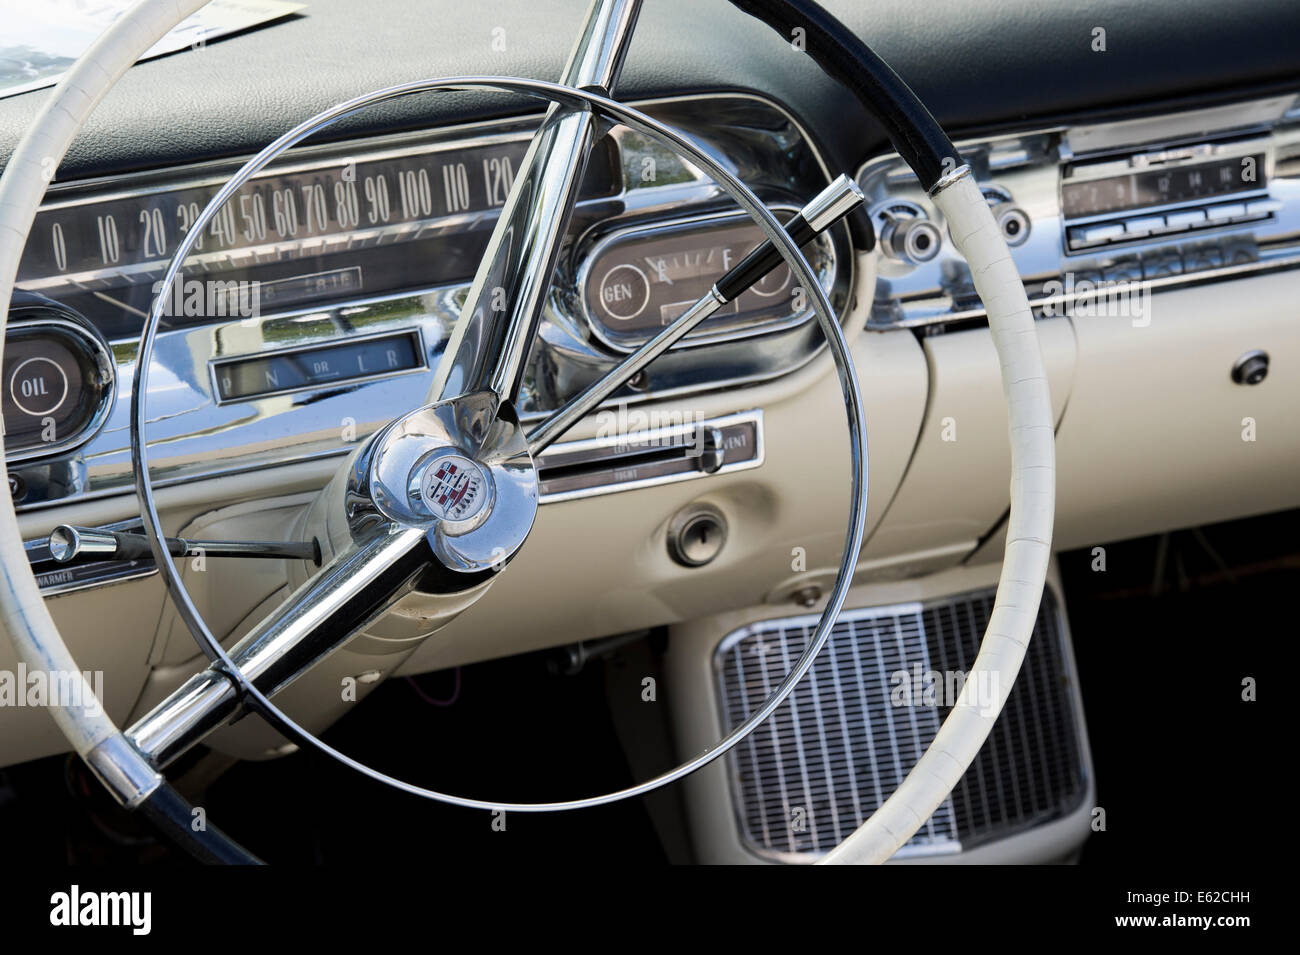 1950s Cadillac Dashboard And Interior Abstract Classic American Car Stock Photo 72583213 Alamy